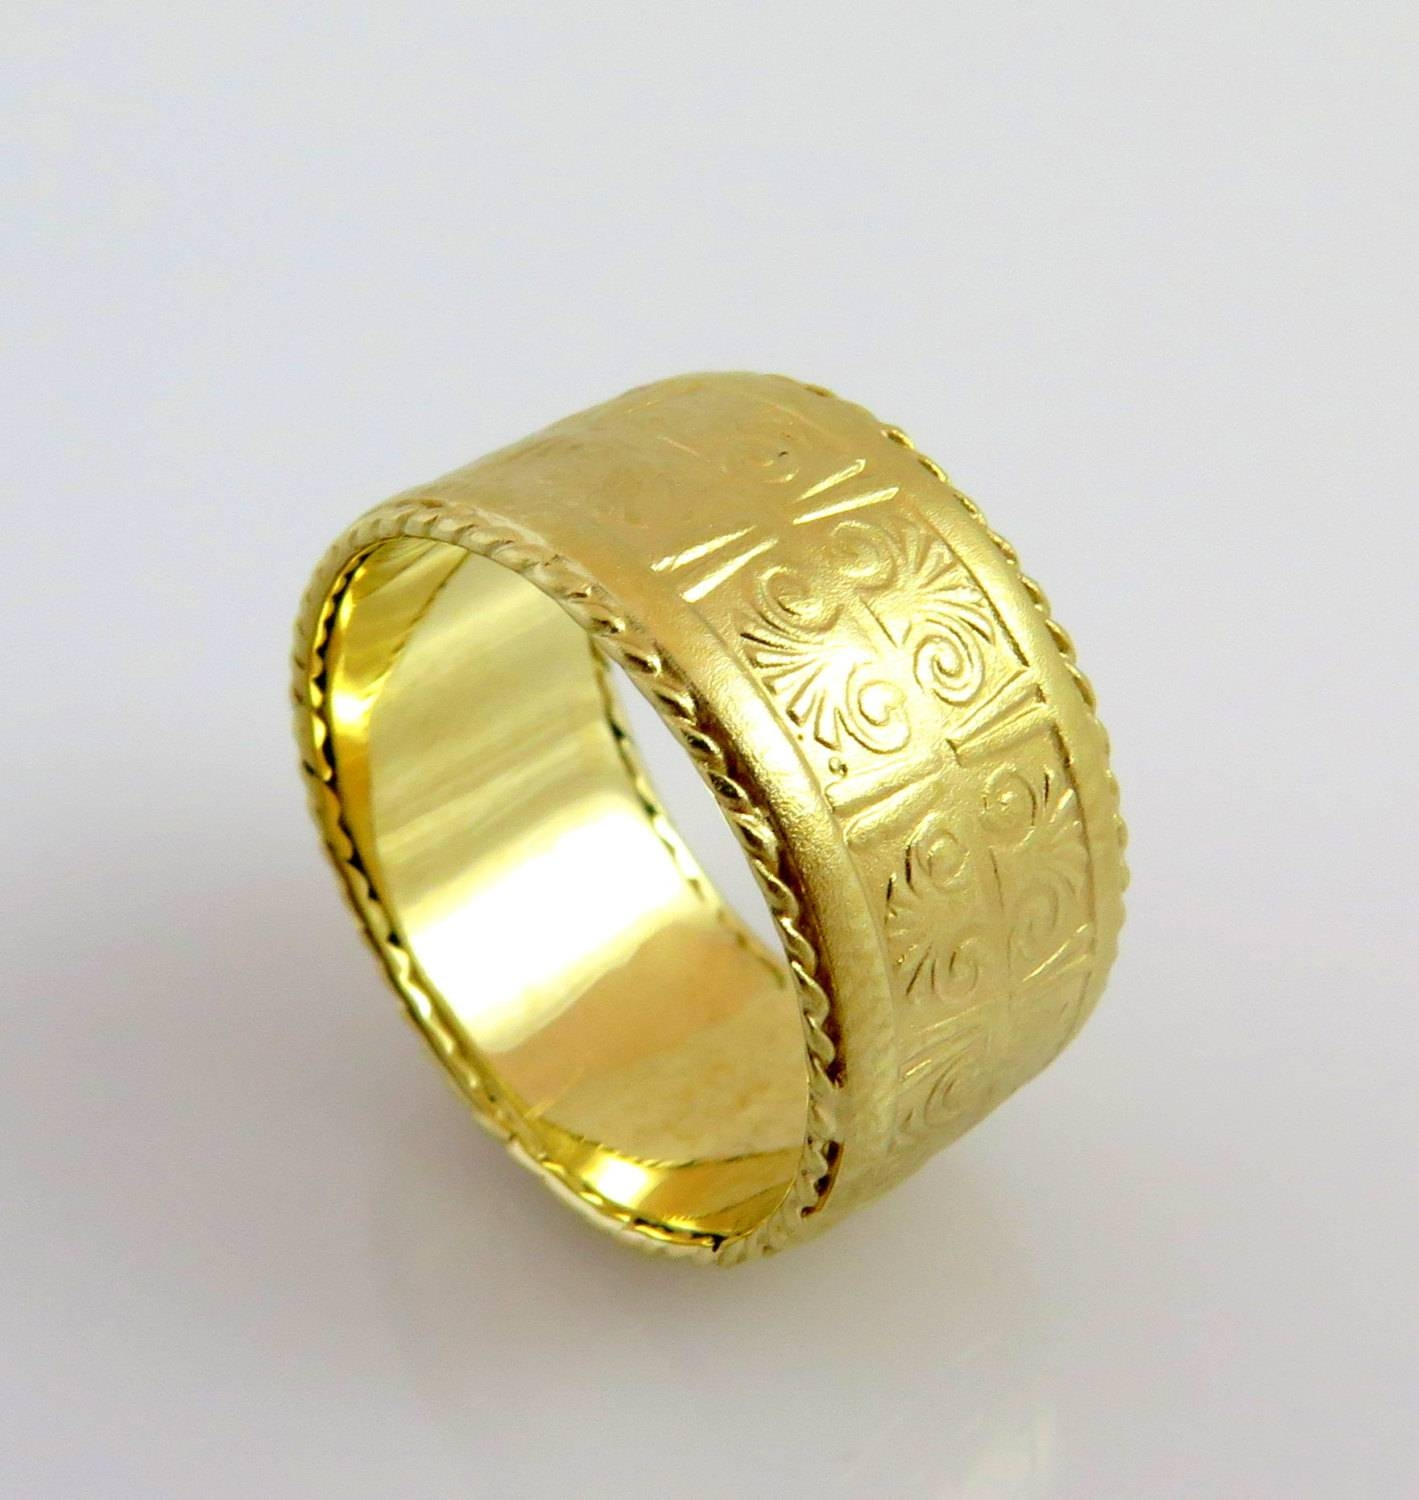 egyptian egyptianringtopbronze rings dynasty ring wedding products